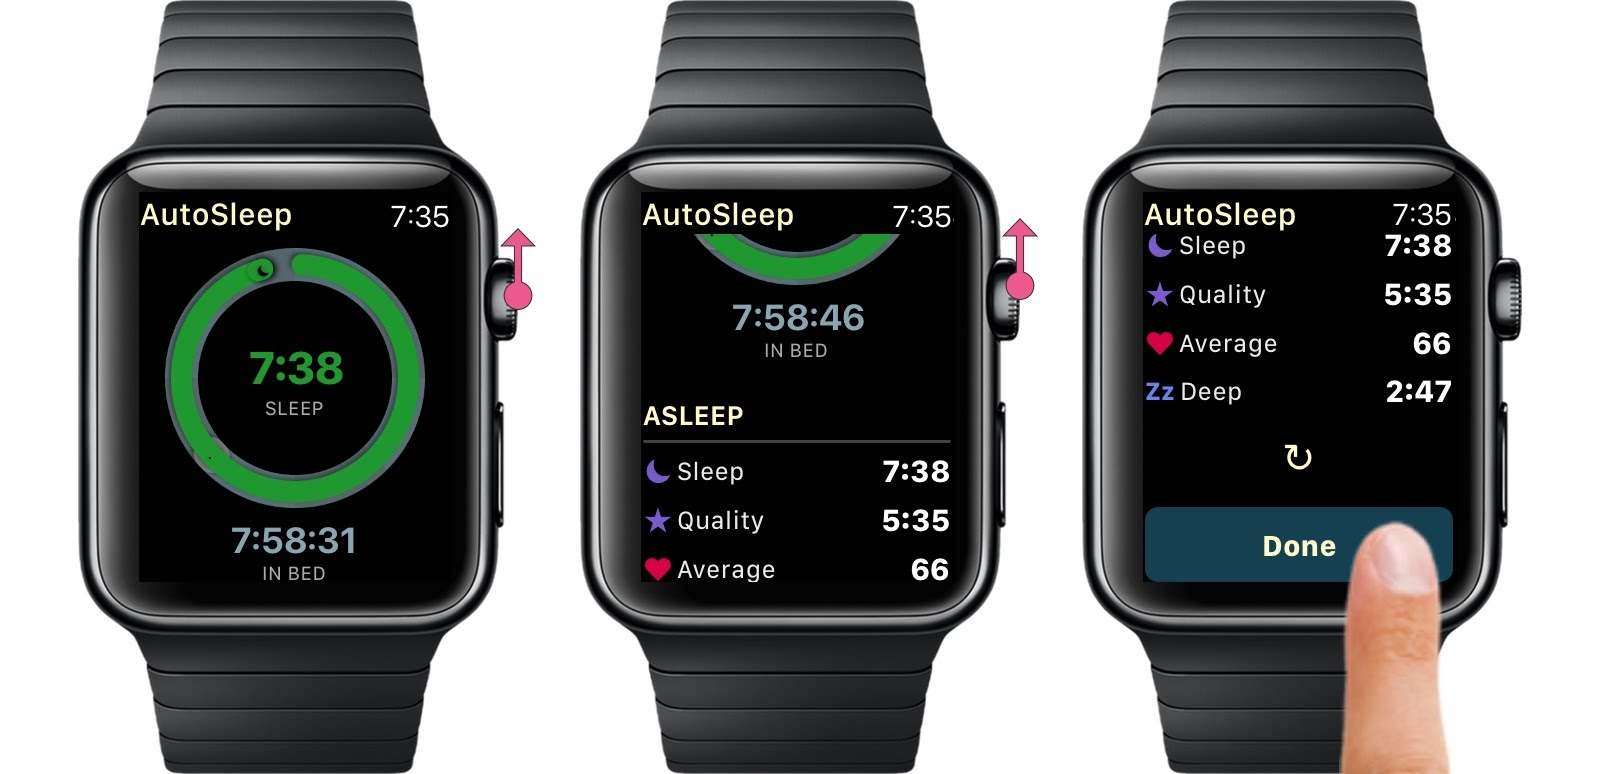 AutoSleep Lights Off Watch Done